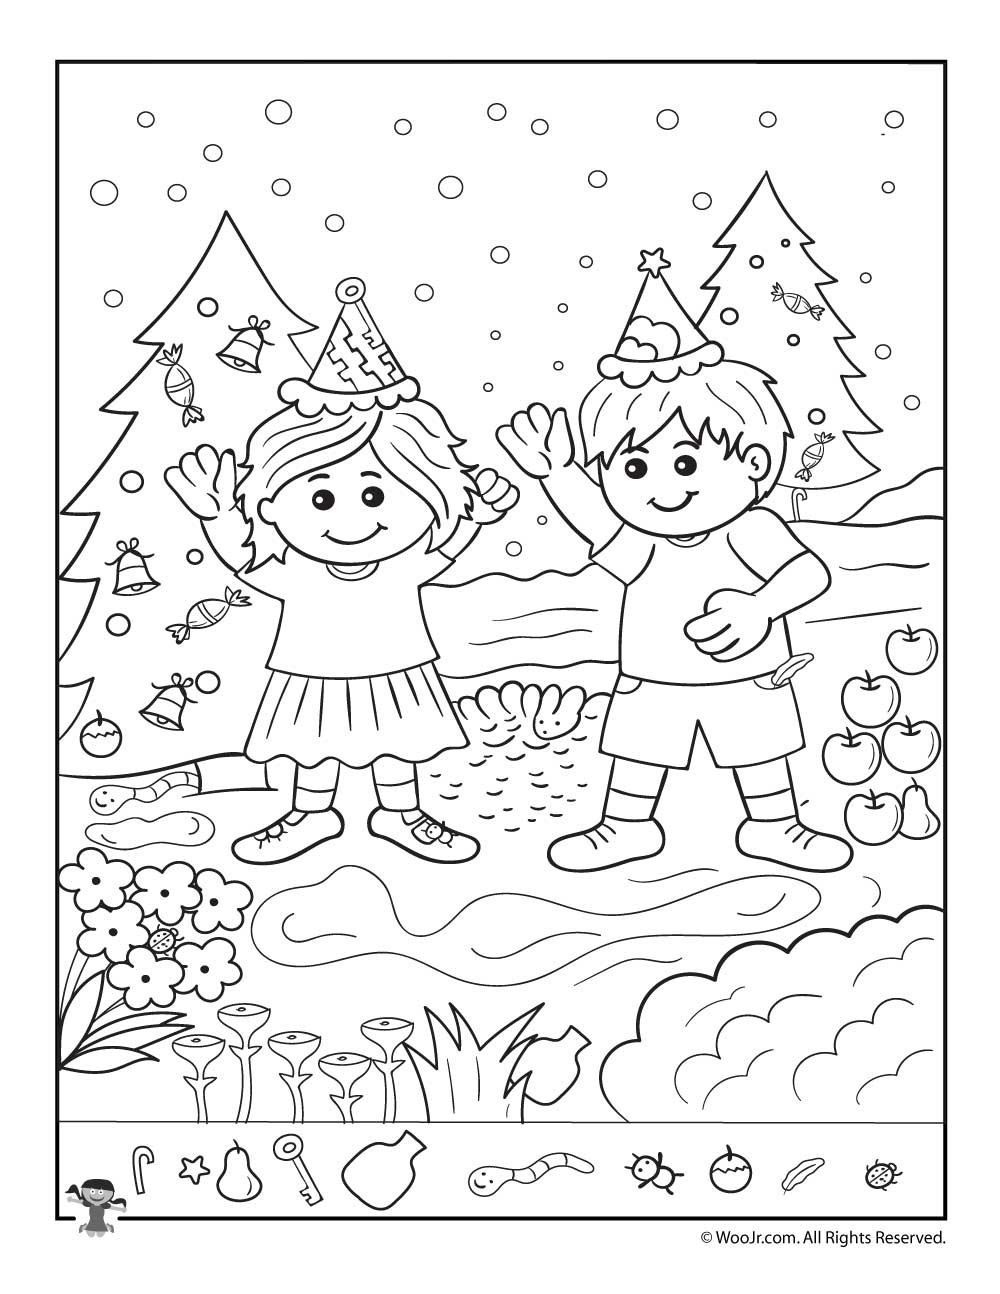 Christmas Hidden Pictures Printable the Kids at Christmas Hidden Picture Page